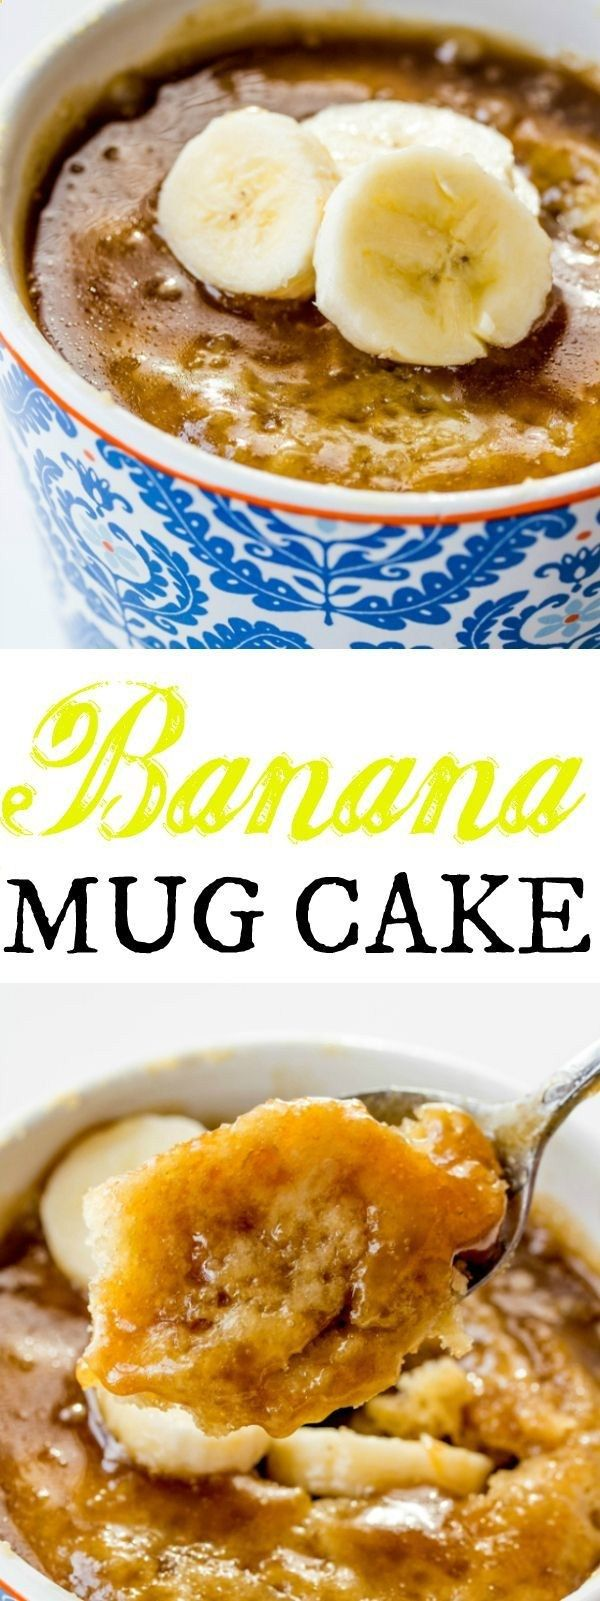 This Banana Mug Cake is the perfect single serving dessert to perk you up when your sweet tooth is calling!